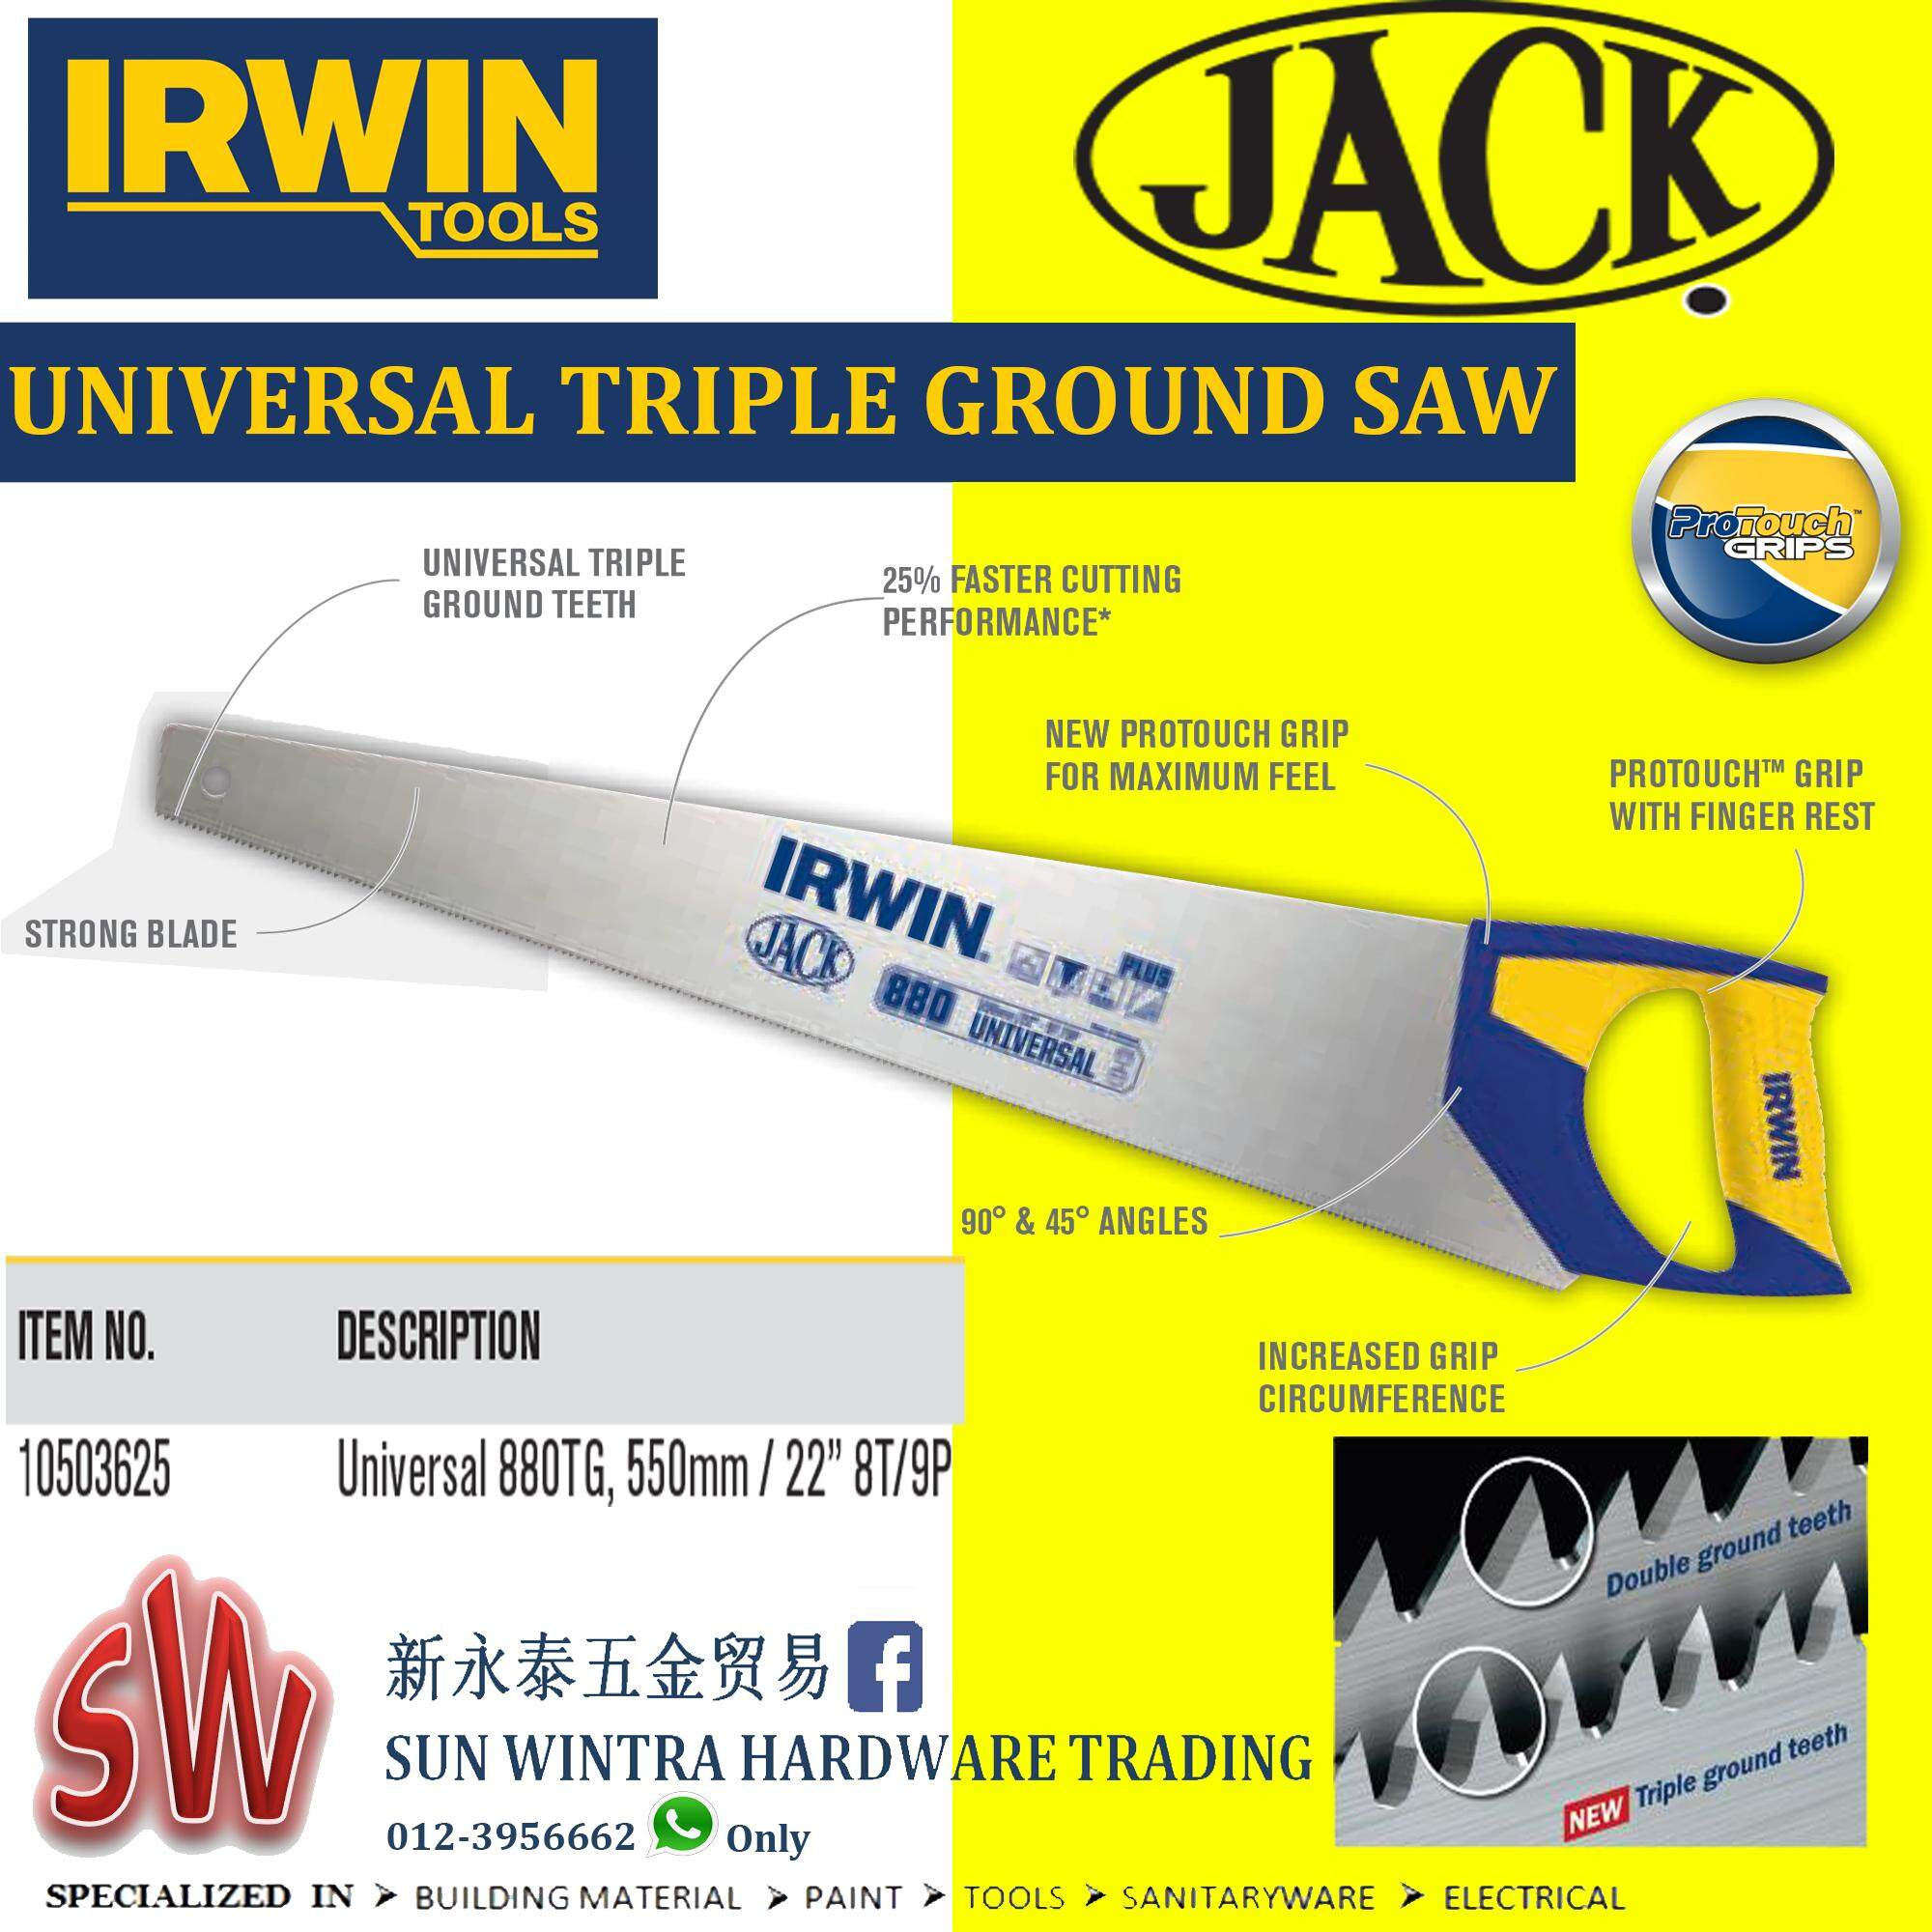 Irwin Plus880 22/550mm Universal Triple Ground Saw By Sun Wintra.